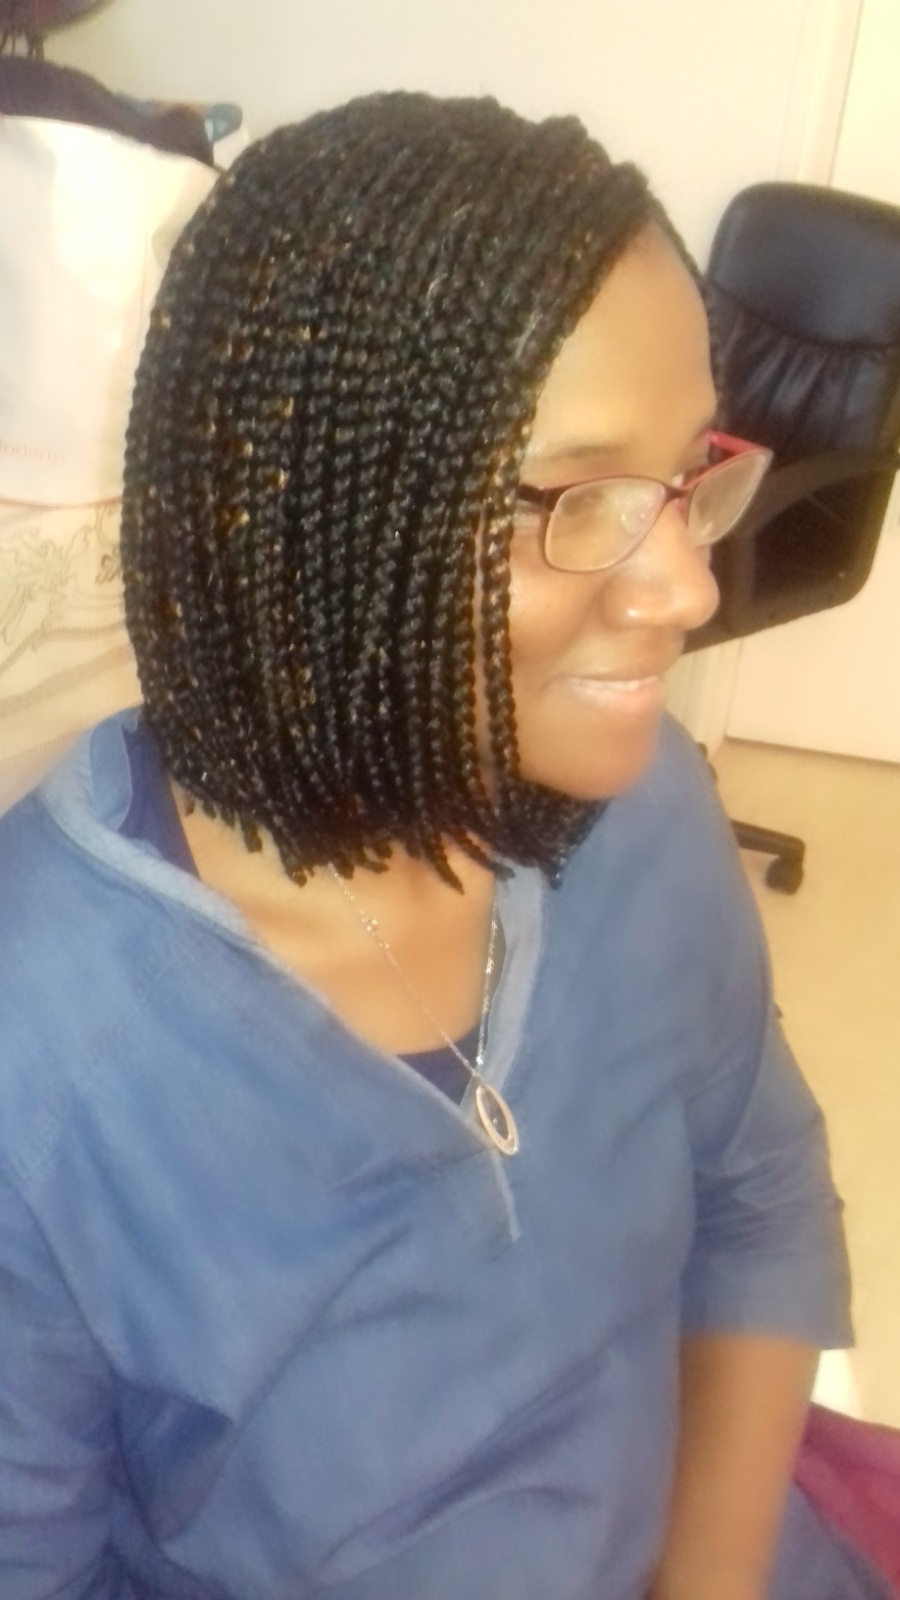 salon de coiffure afro tresse tresses box braids crochet braids vanilles tissages paris 75 77 78 91 92 93 94 95 CKFYSCOY